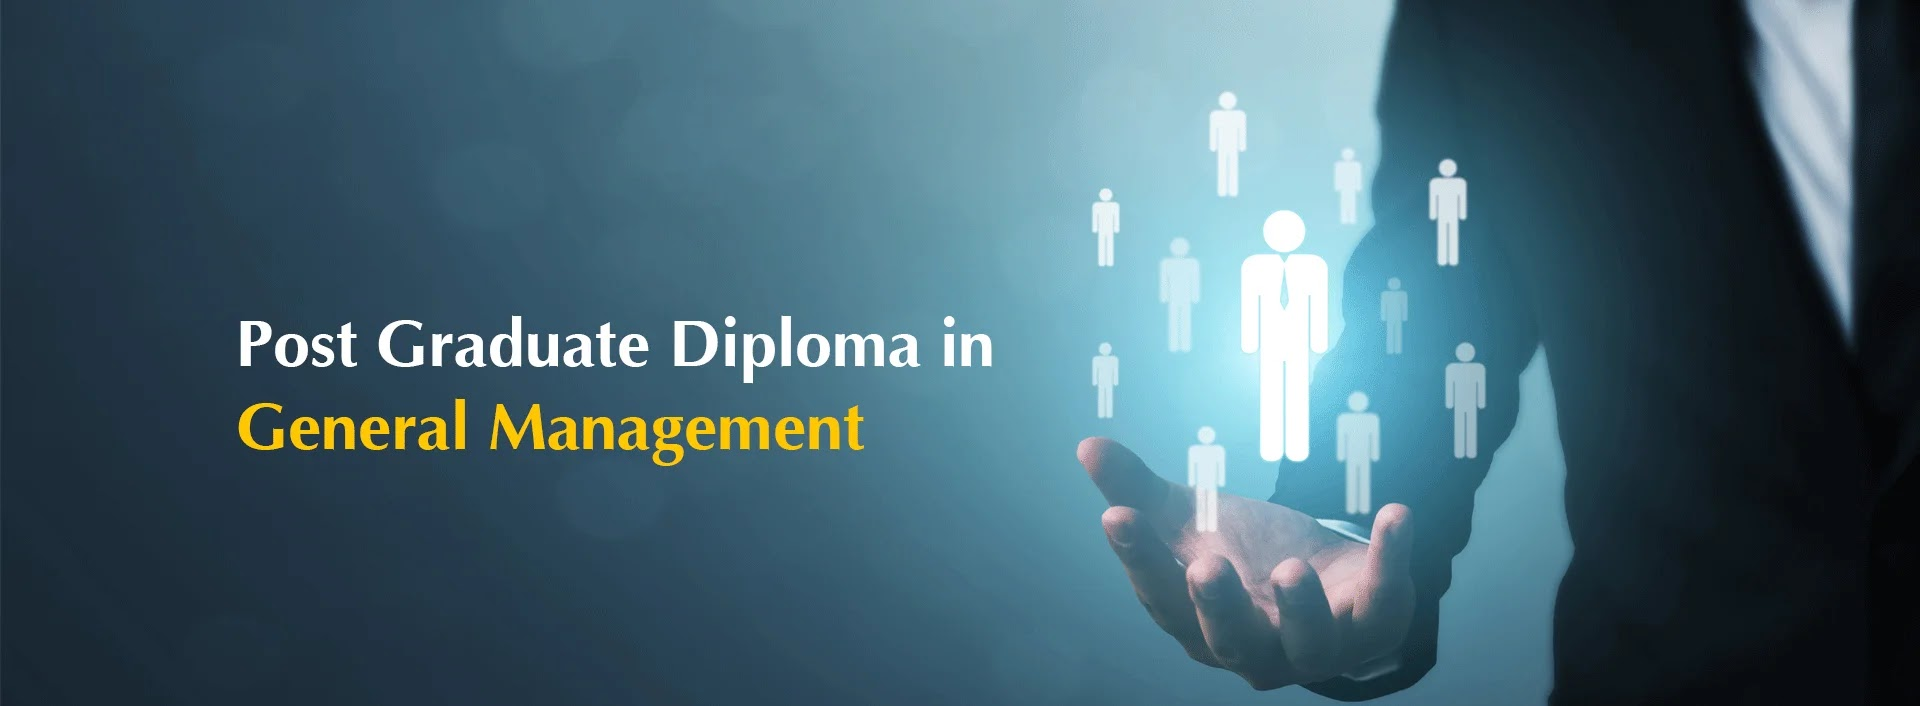 Top Ranked College for General Management Post Graduate Diploma